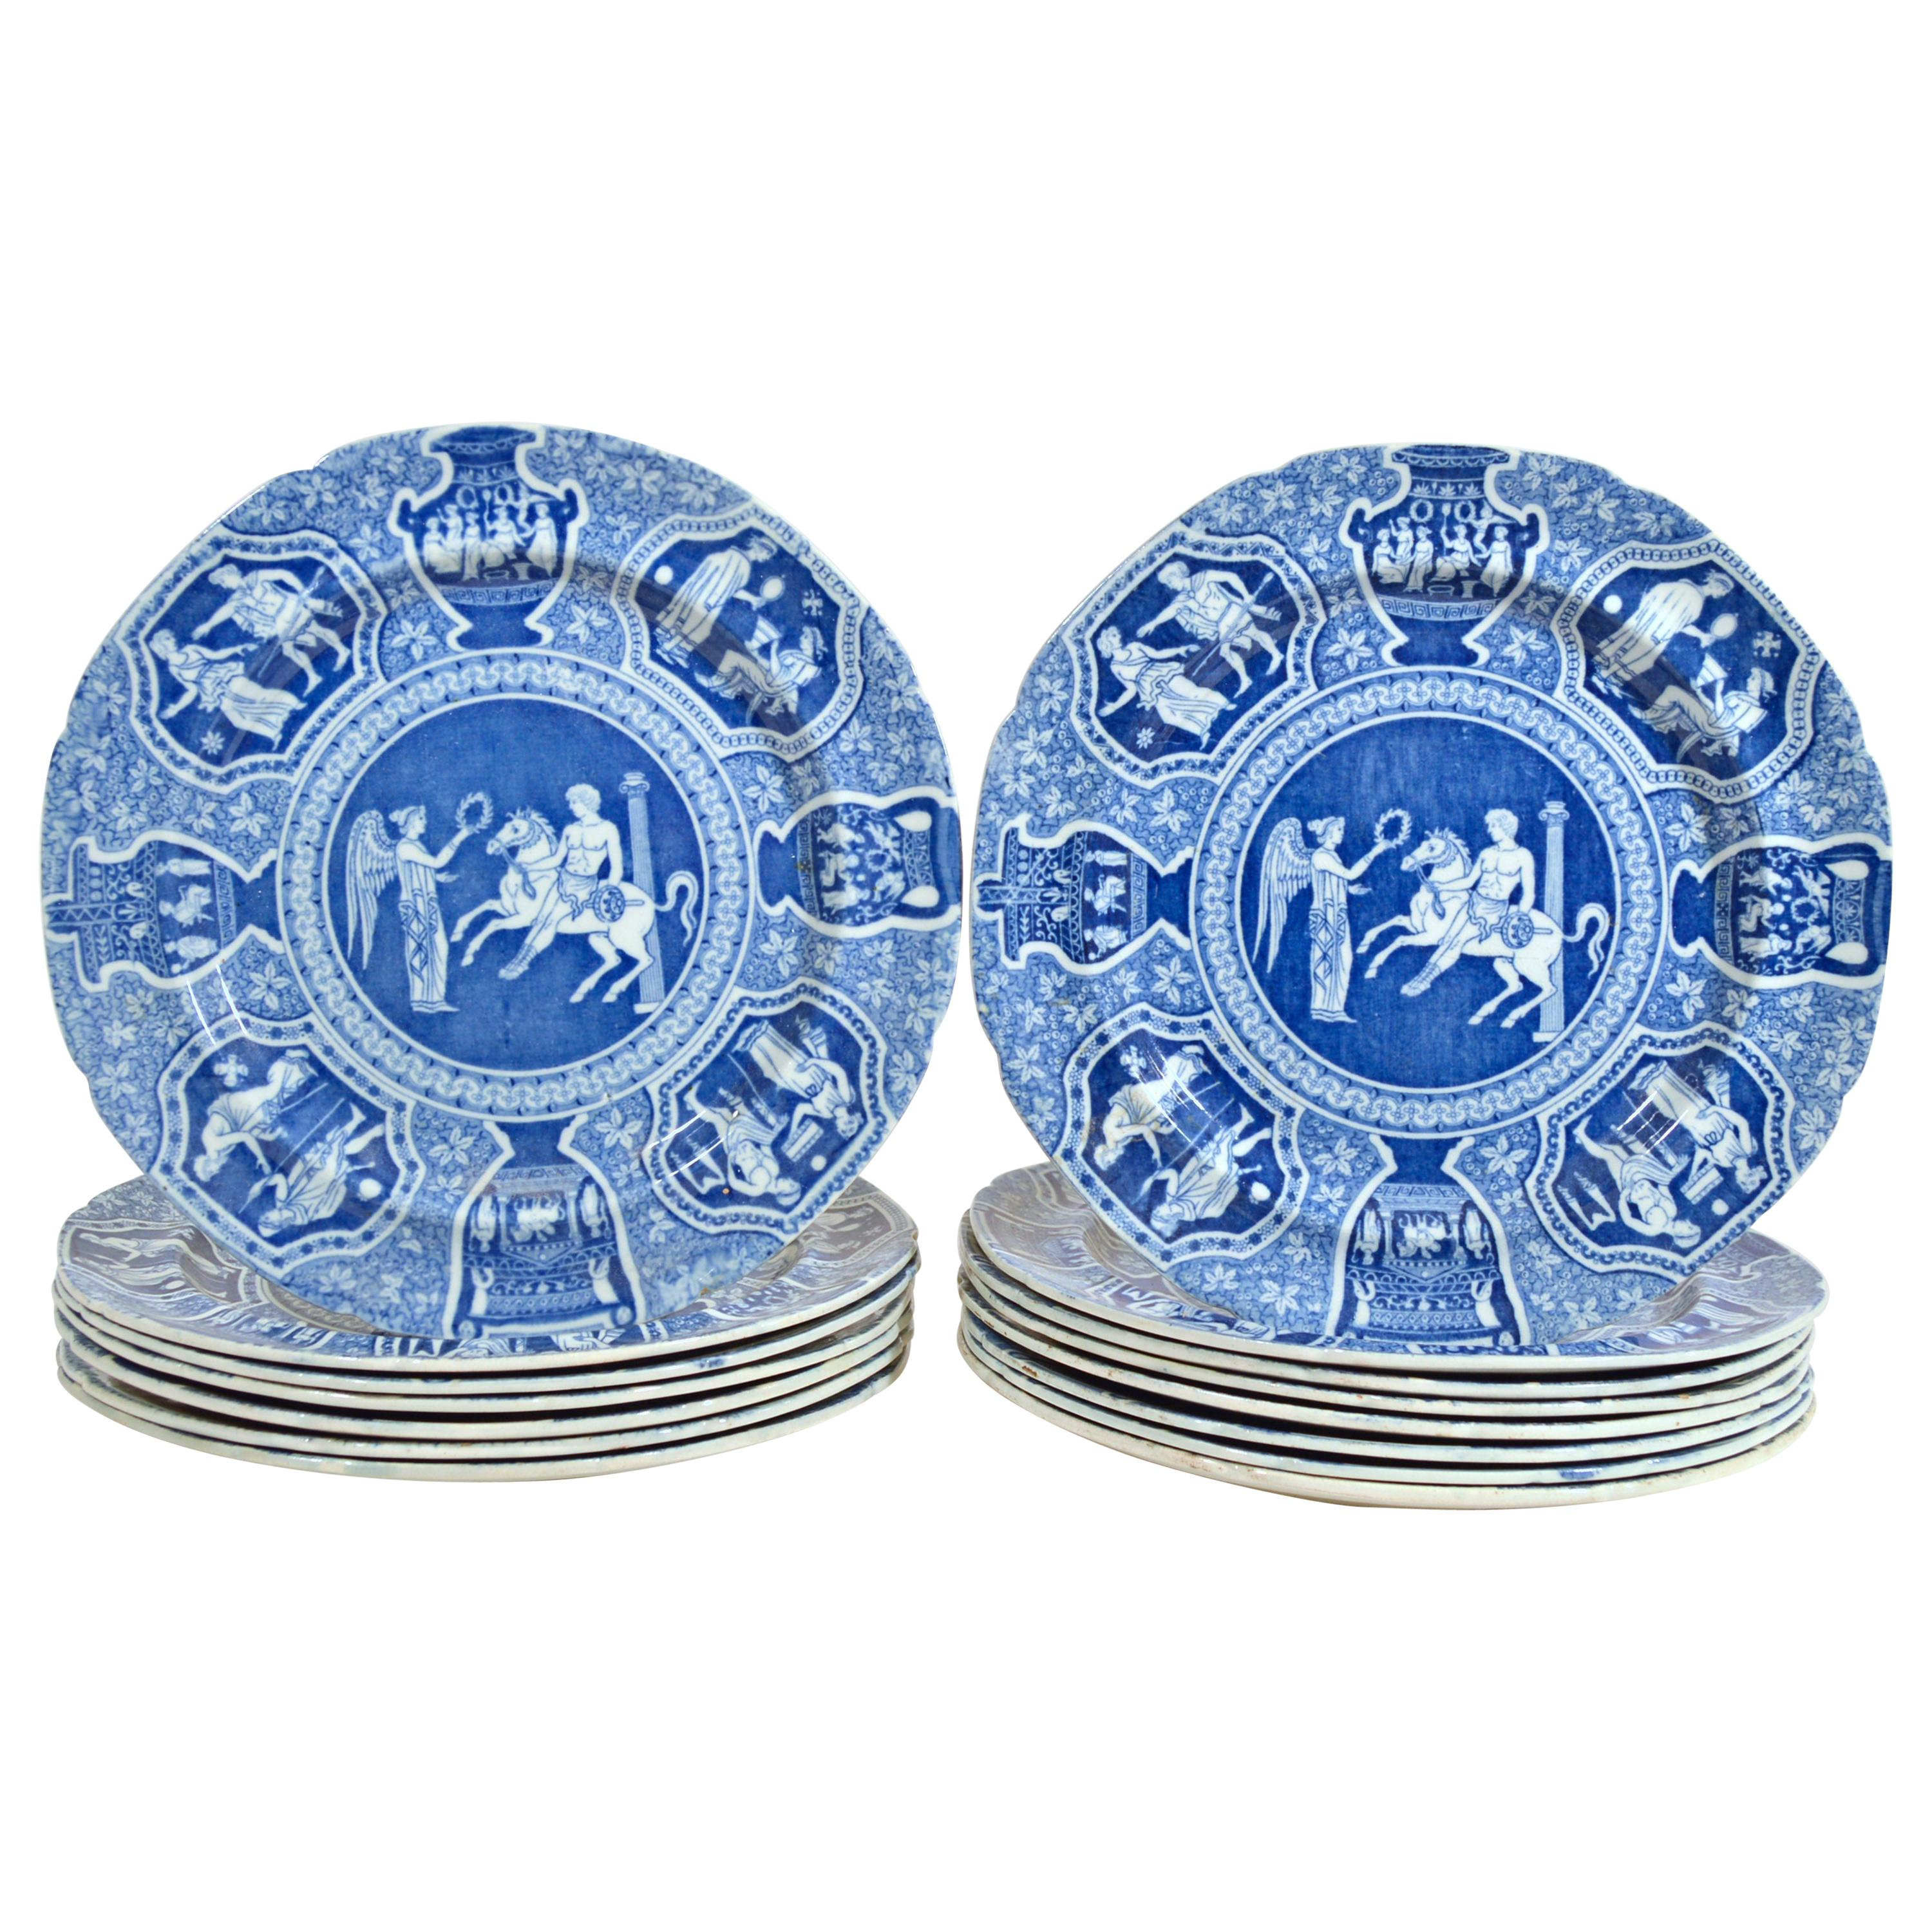 Spode Pottery Neo-classical Greek Pattern Blue Salad Plates